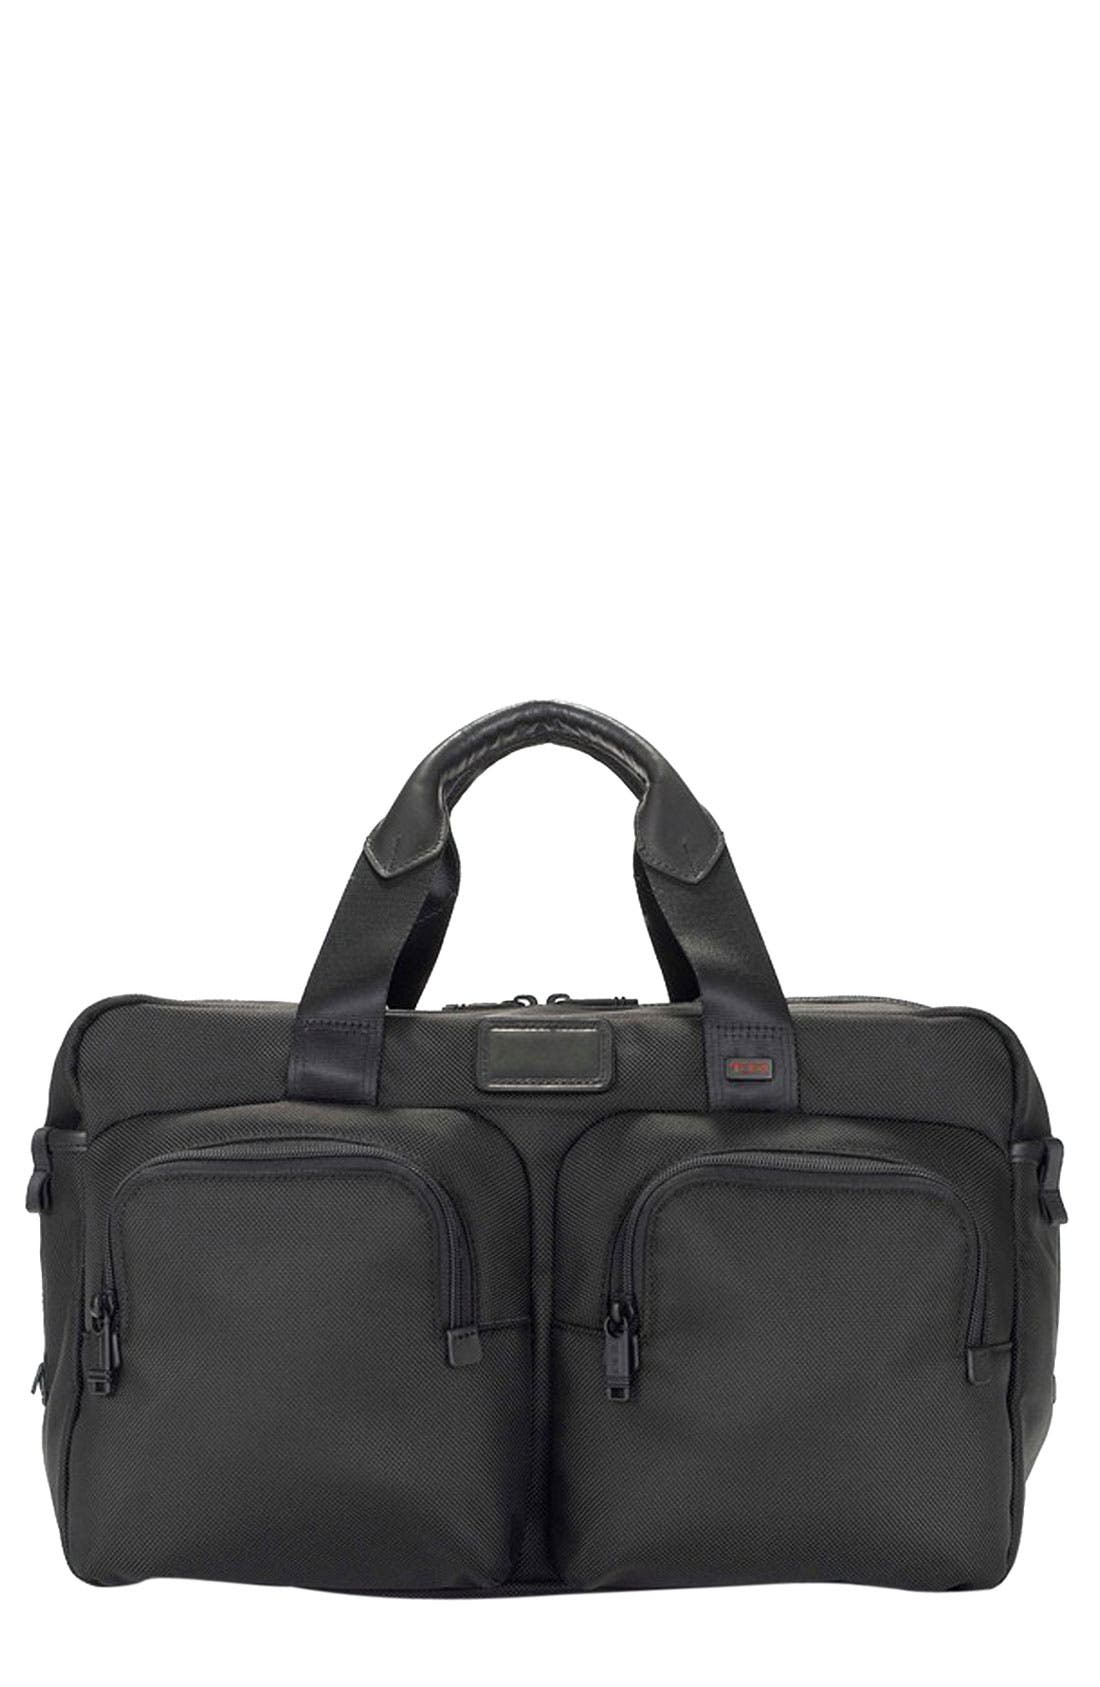 Alternate Image 1 Selected - Tumi 'Alpha Bravo - Everett' Essential Tote (16 Inch)